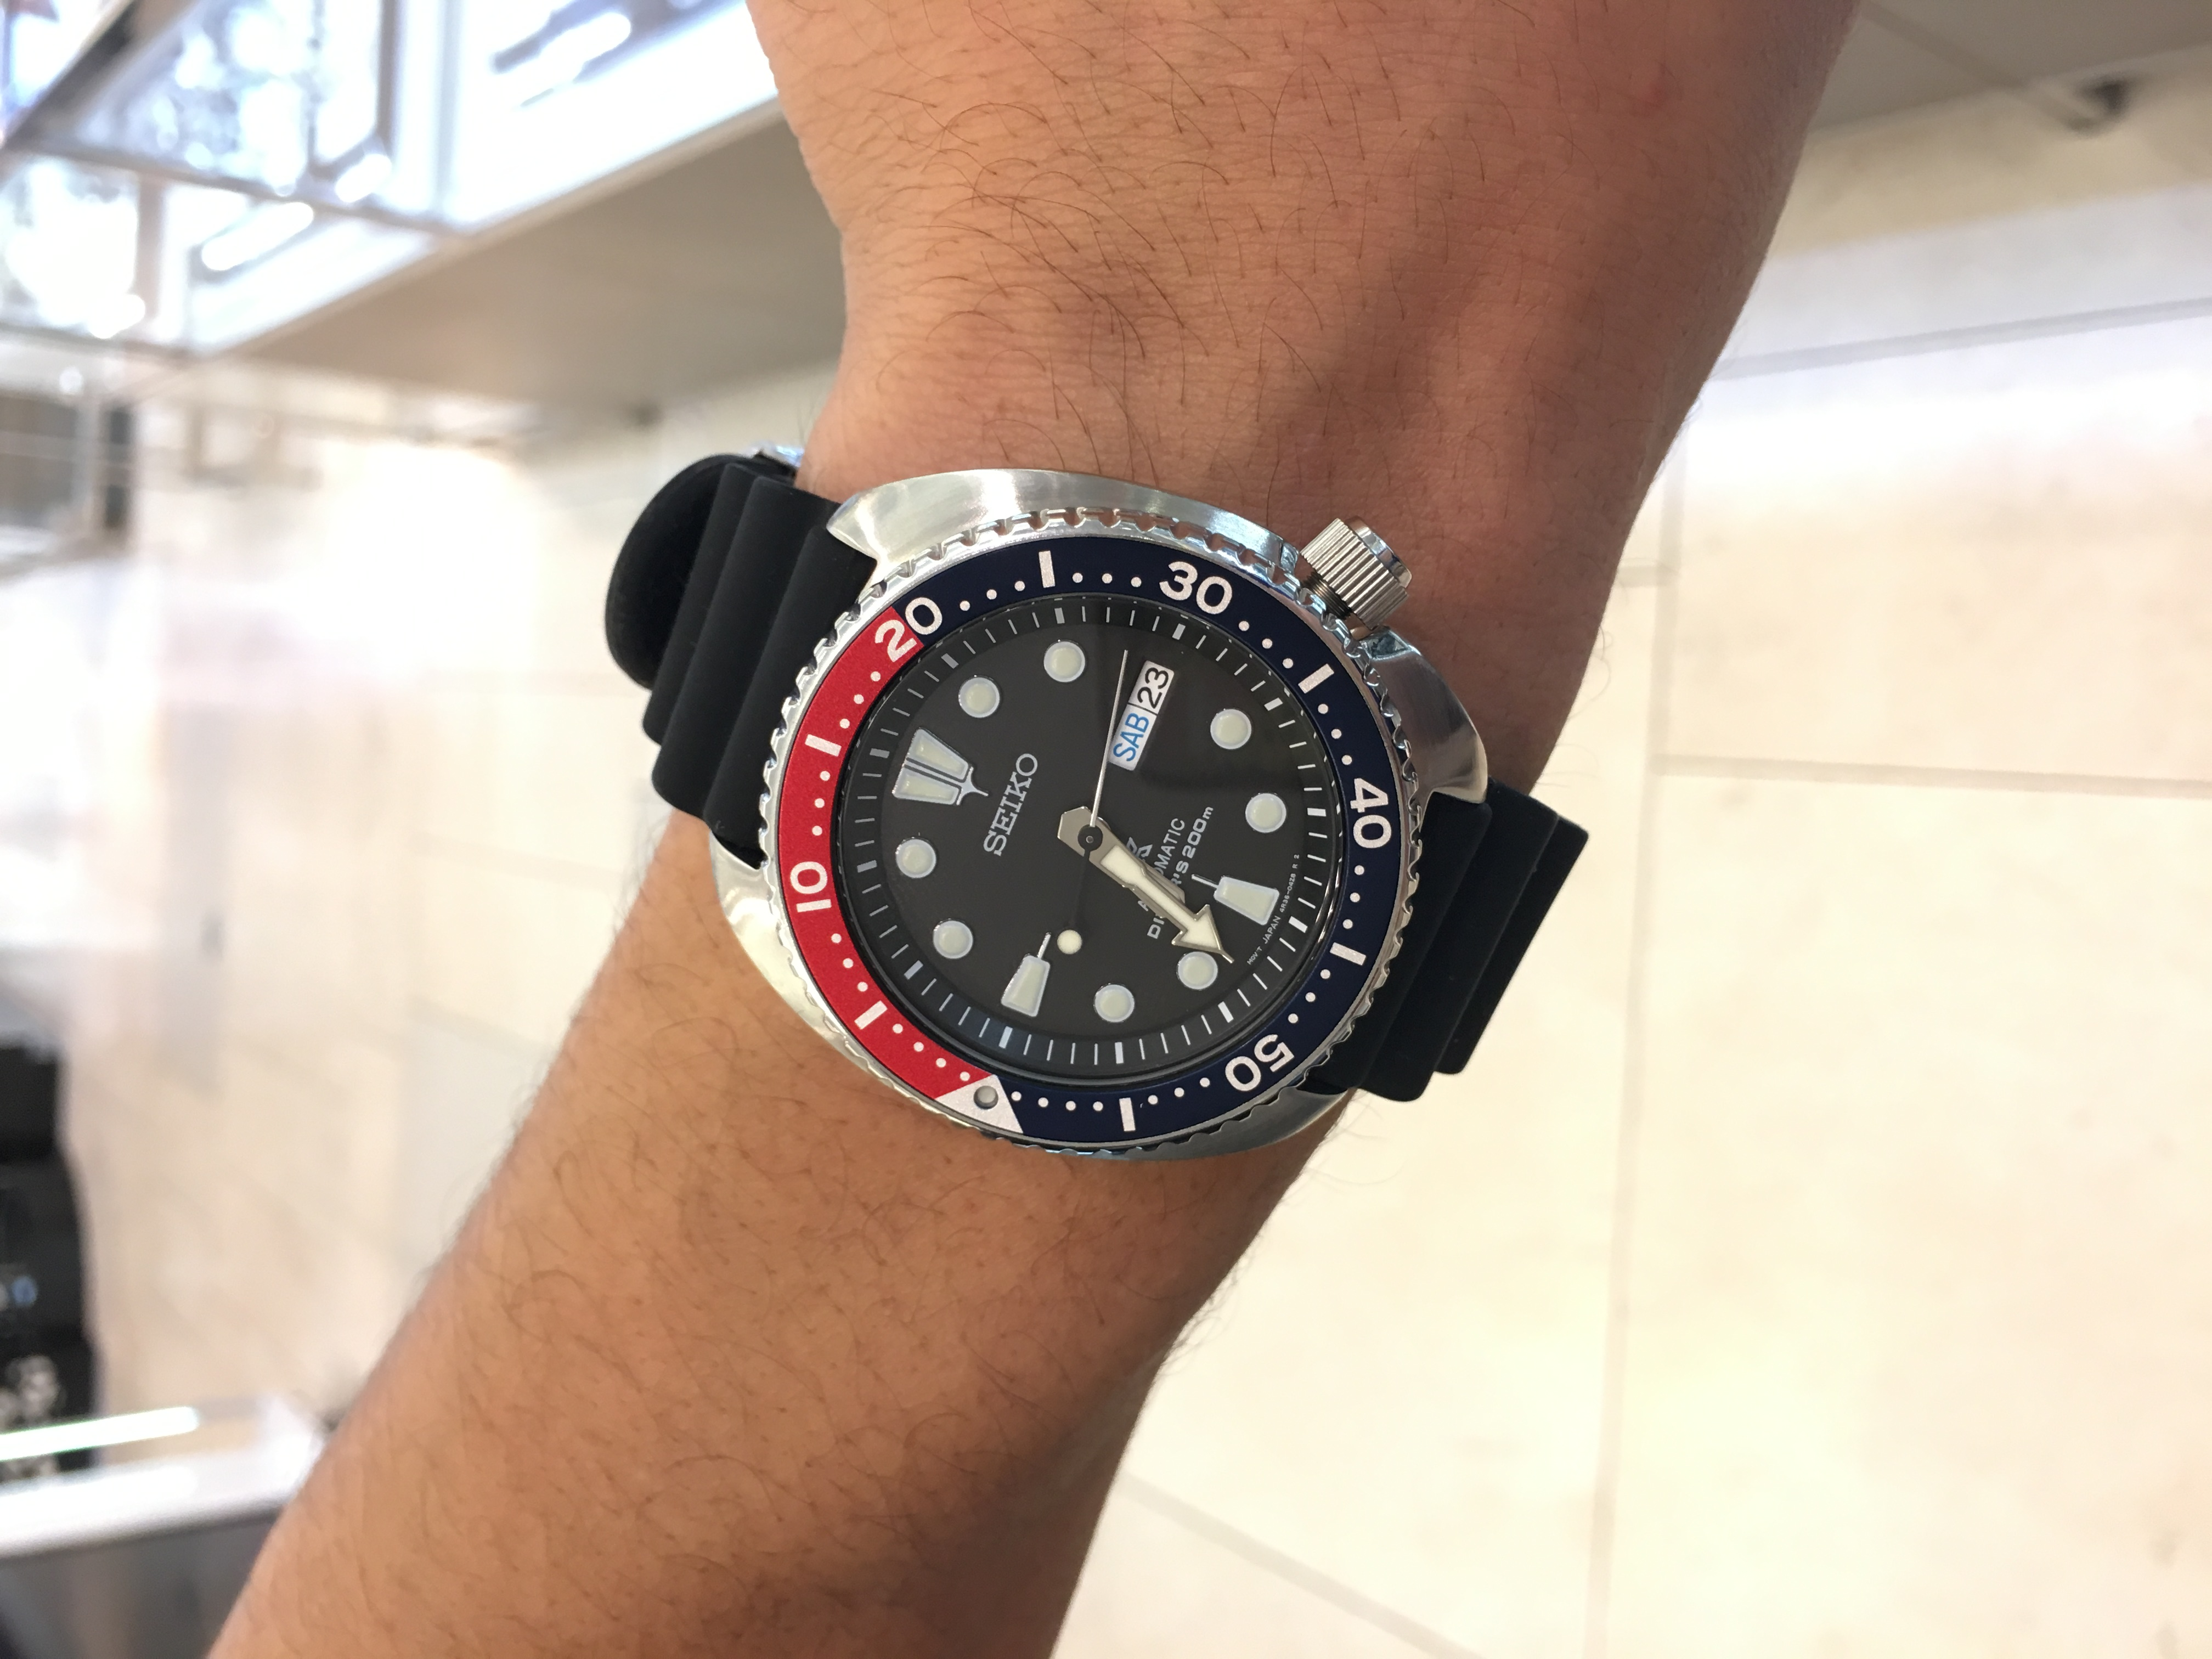 Fabien Cousteau talks about Seiko and the Seiko Prospex watch during the event.